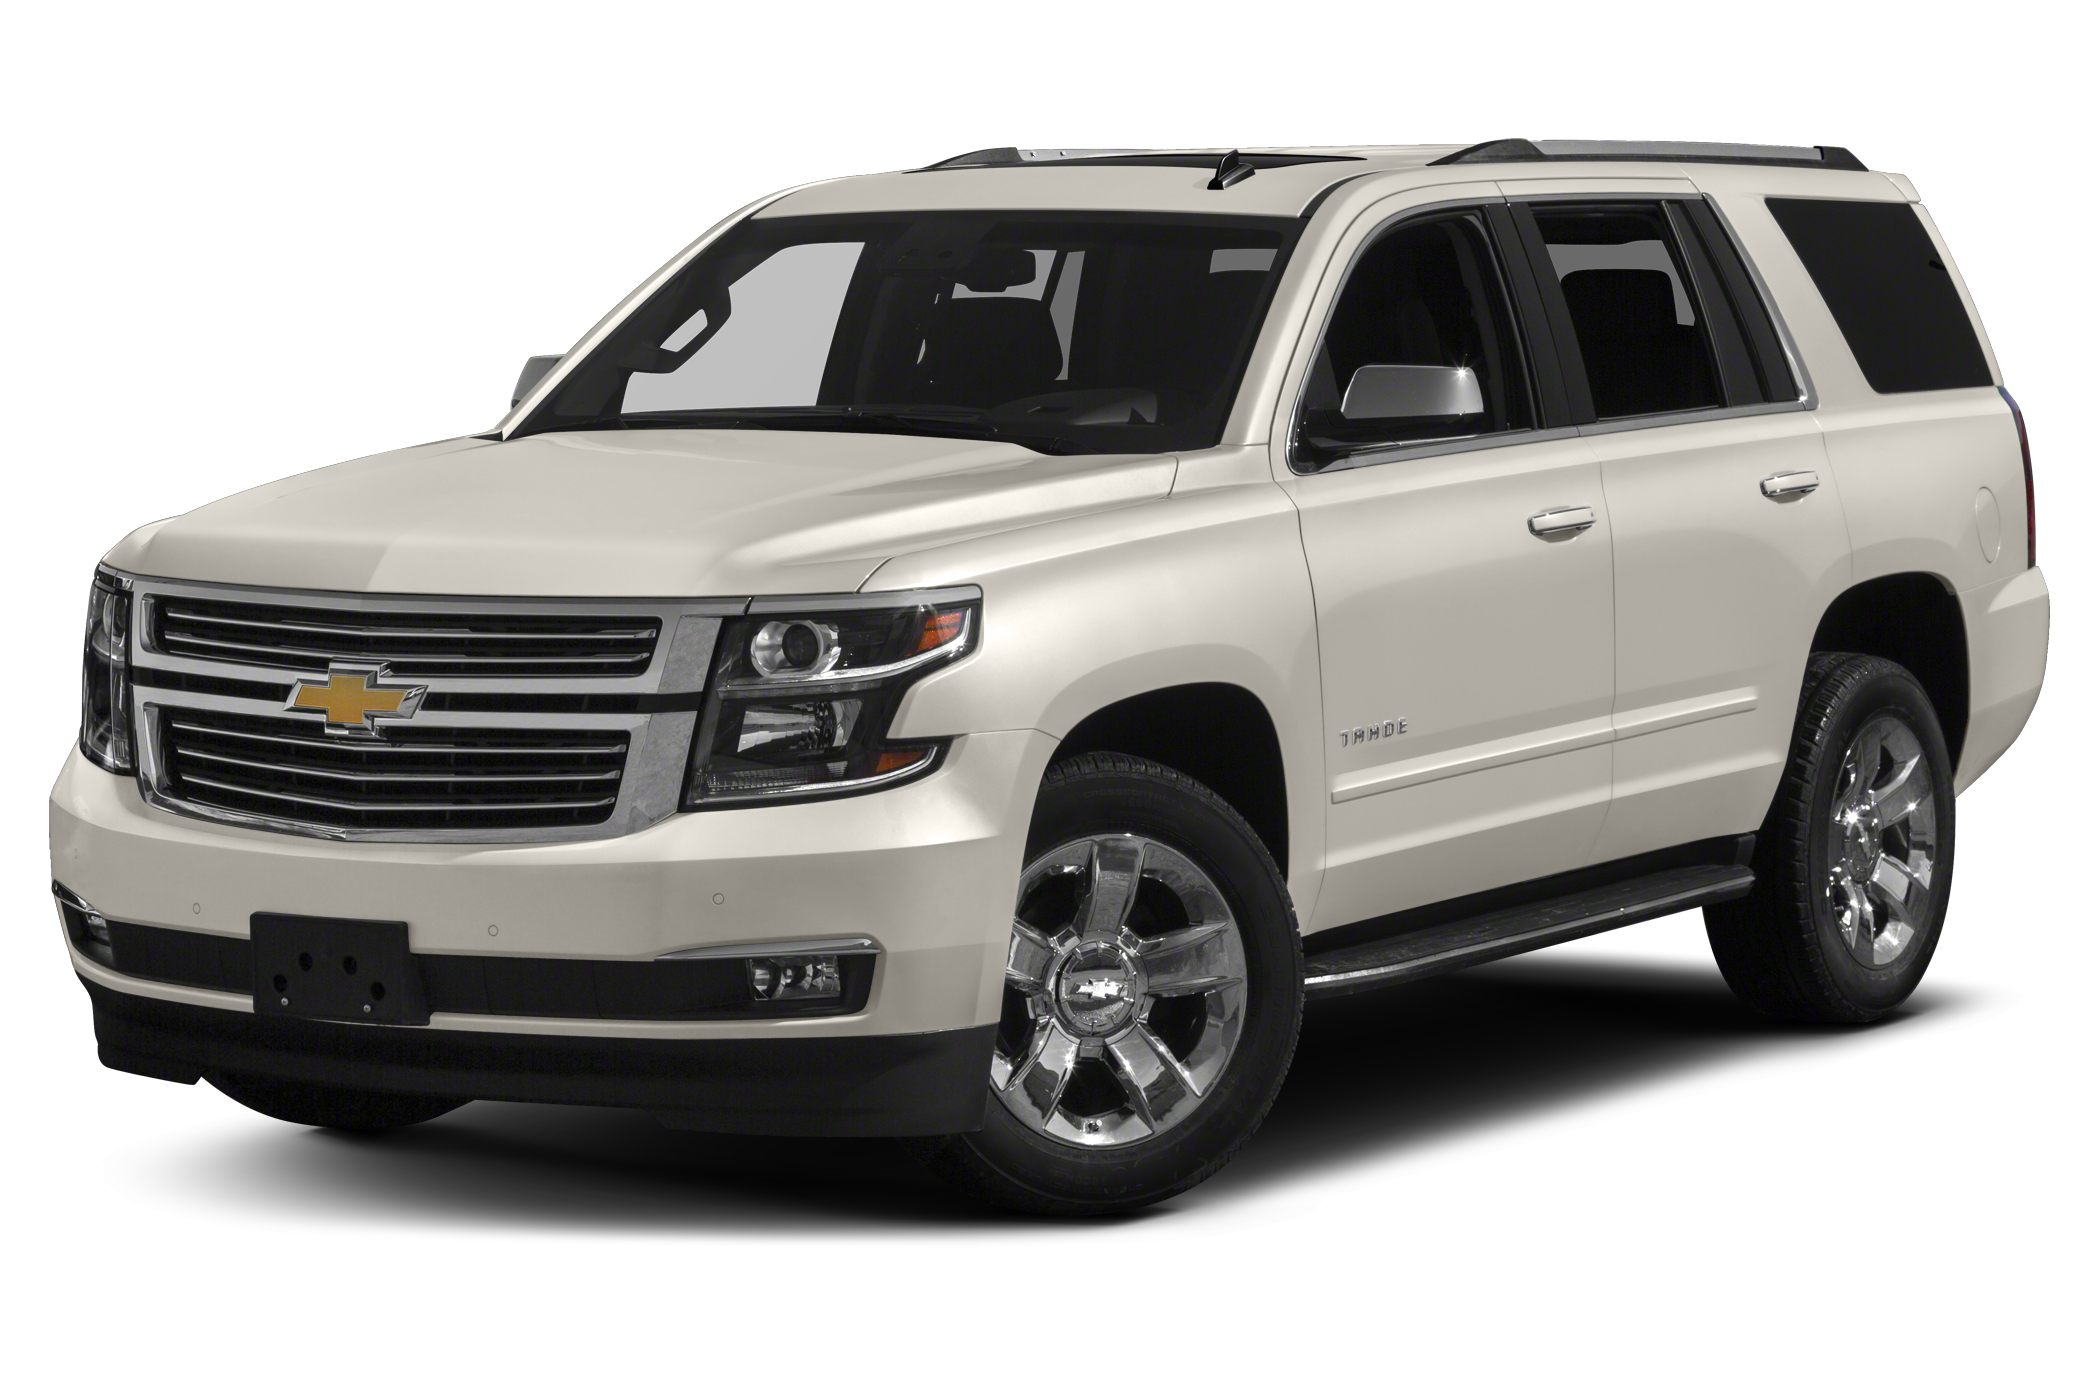 2015 Chevrolet Tahoe Ltz 4x4 Pricing And Options